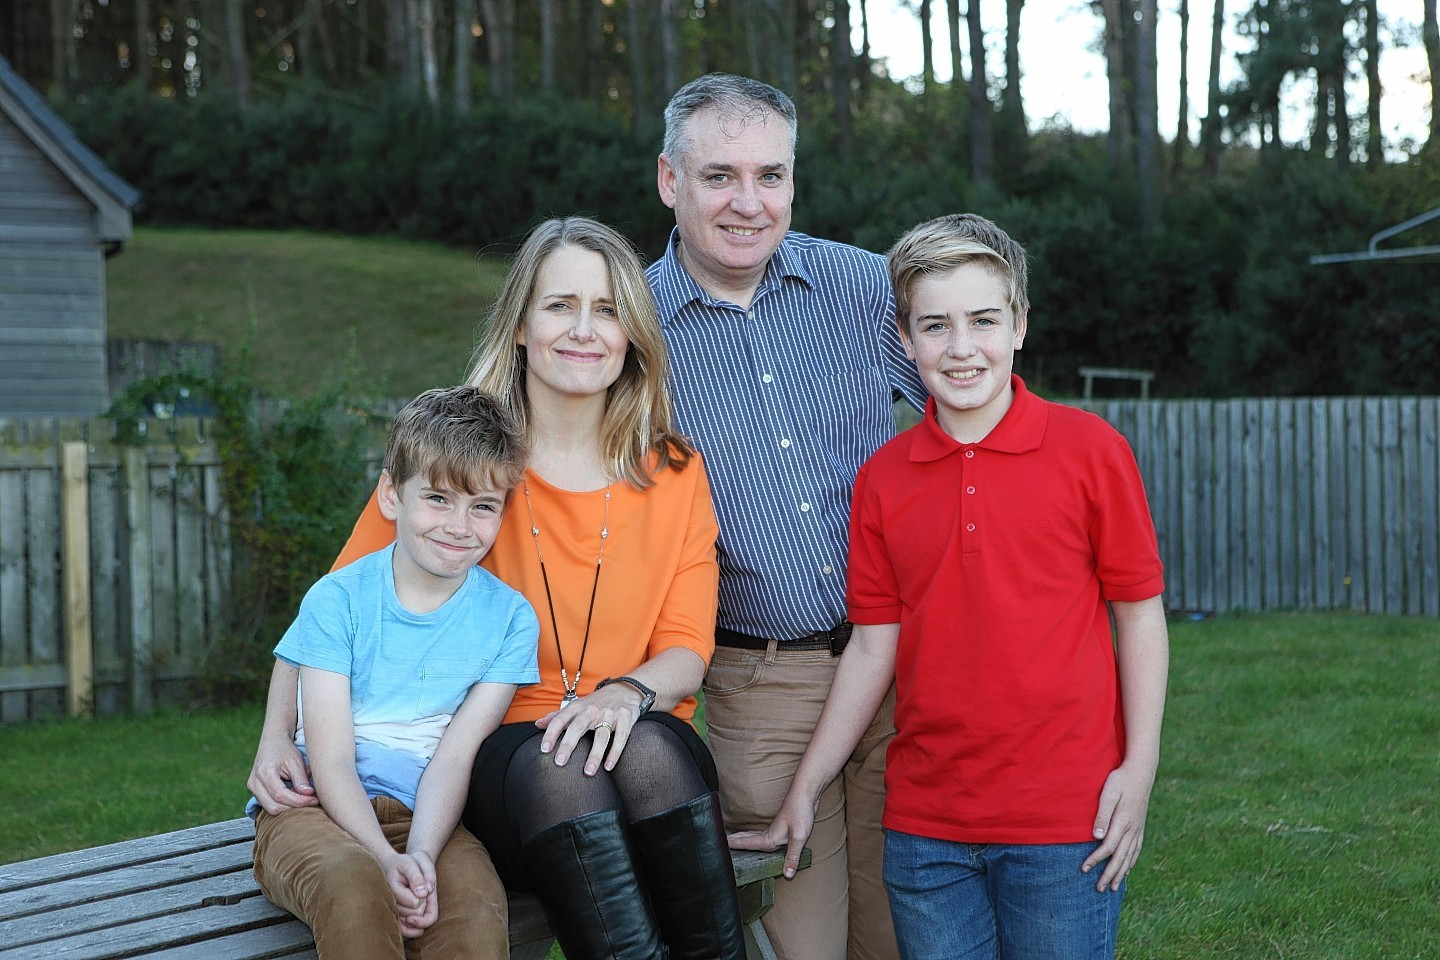 Fiona and Richard Lochhead with their children